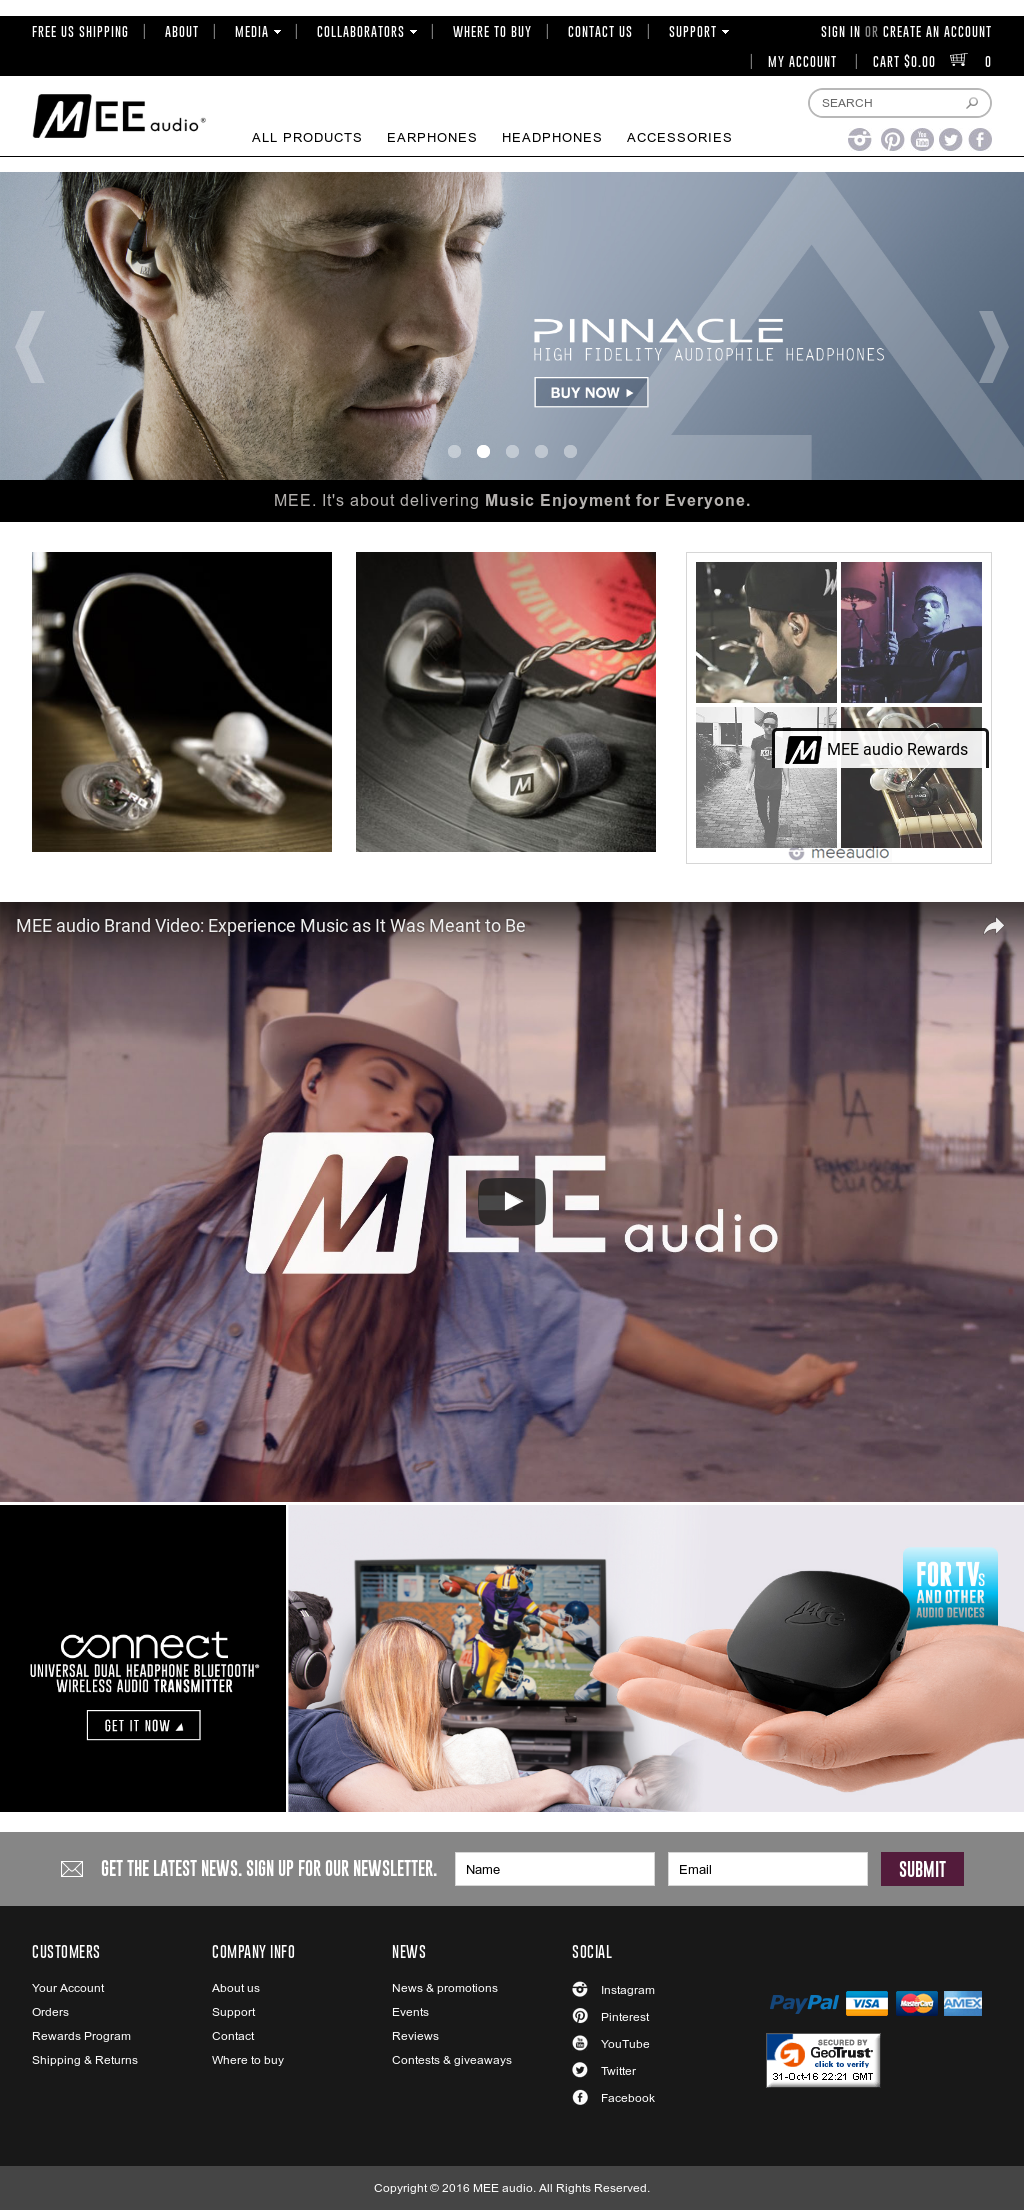 MEE audio Competitors, Revenue and Employees - Owler Company